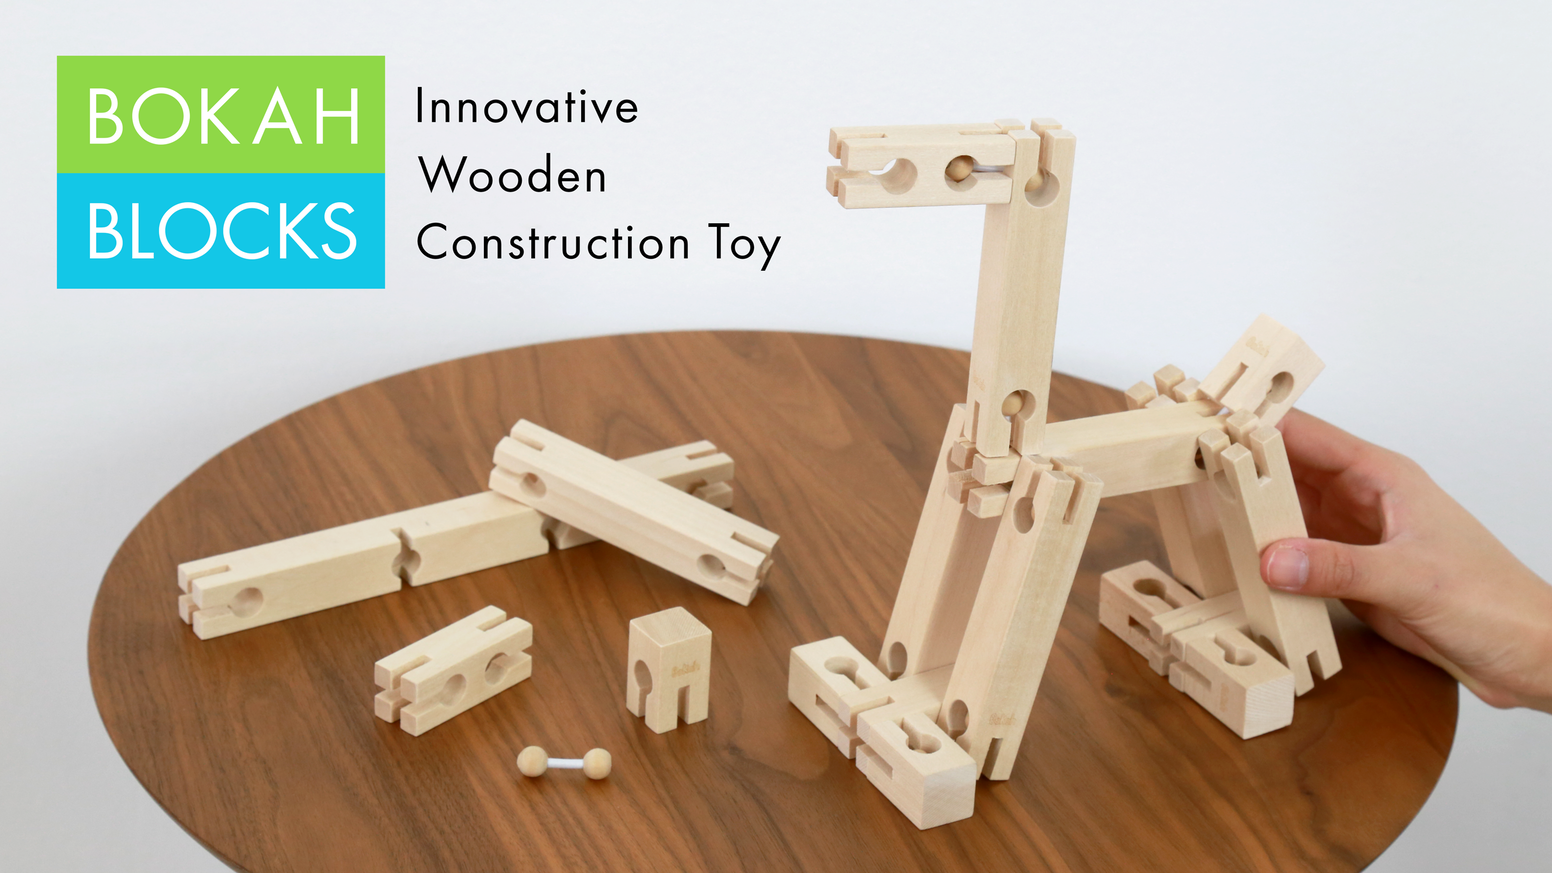 An educational toy from Bokah Blocks, these connectable blocks make learning essential skills fun for kids of any age.